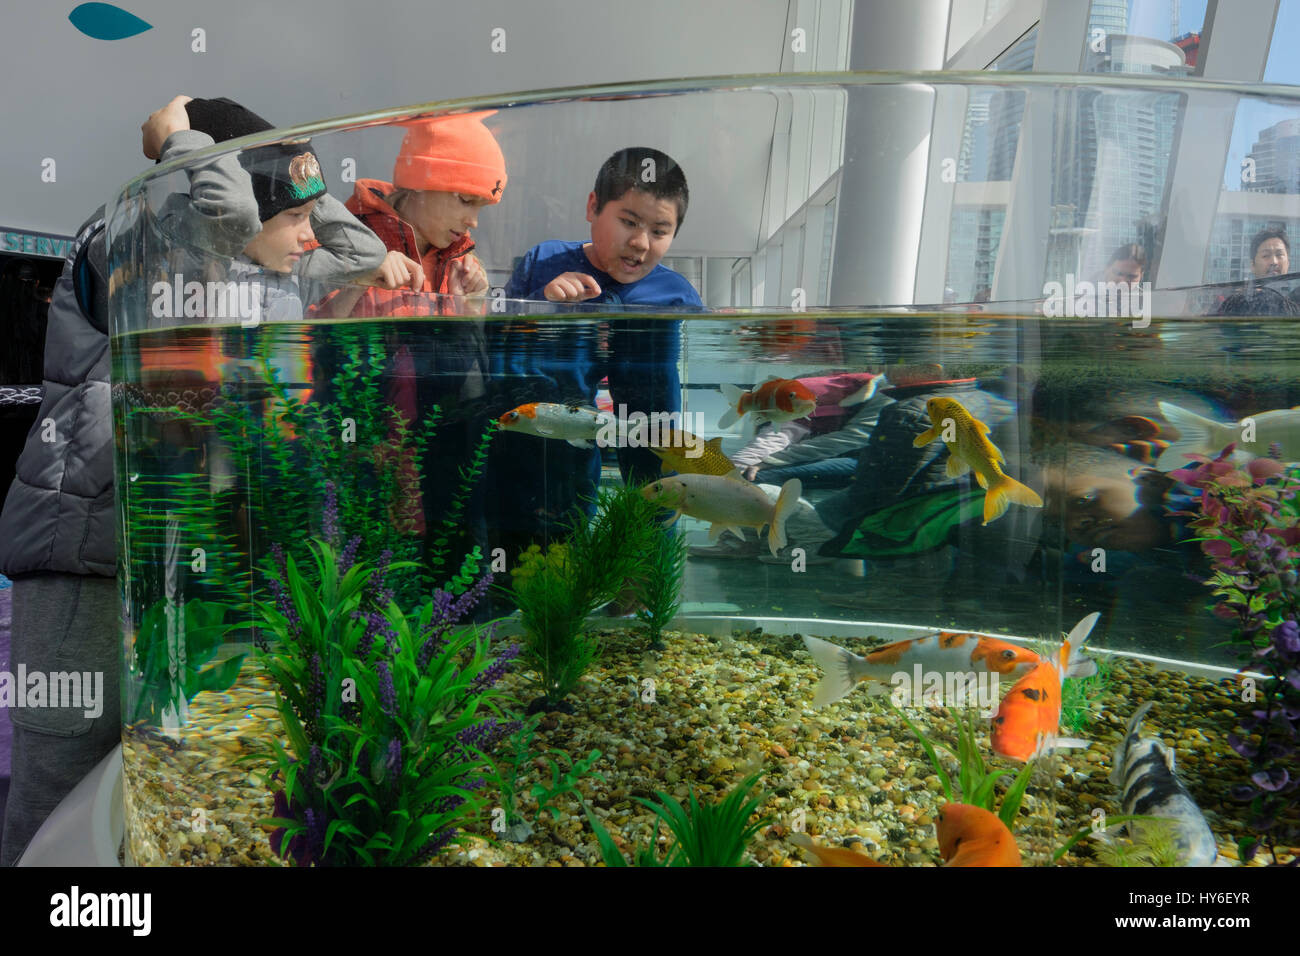 Fish aquarium in canada - Ripley S Aquarium Of Canada Kids Children Observing A Water Tank Aquarium With